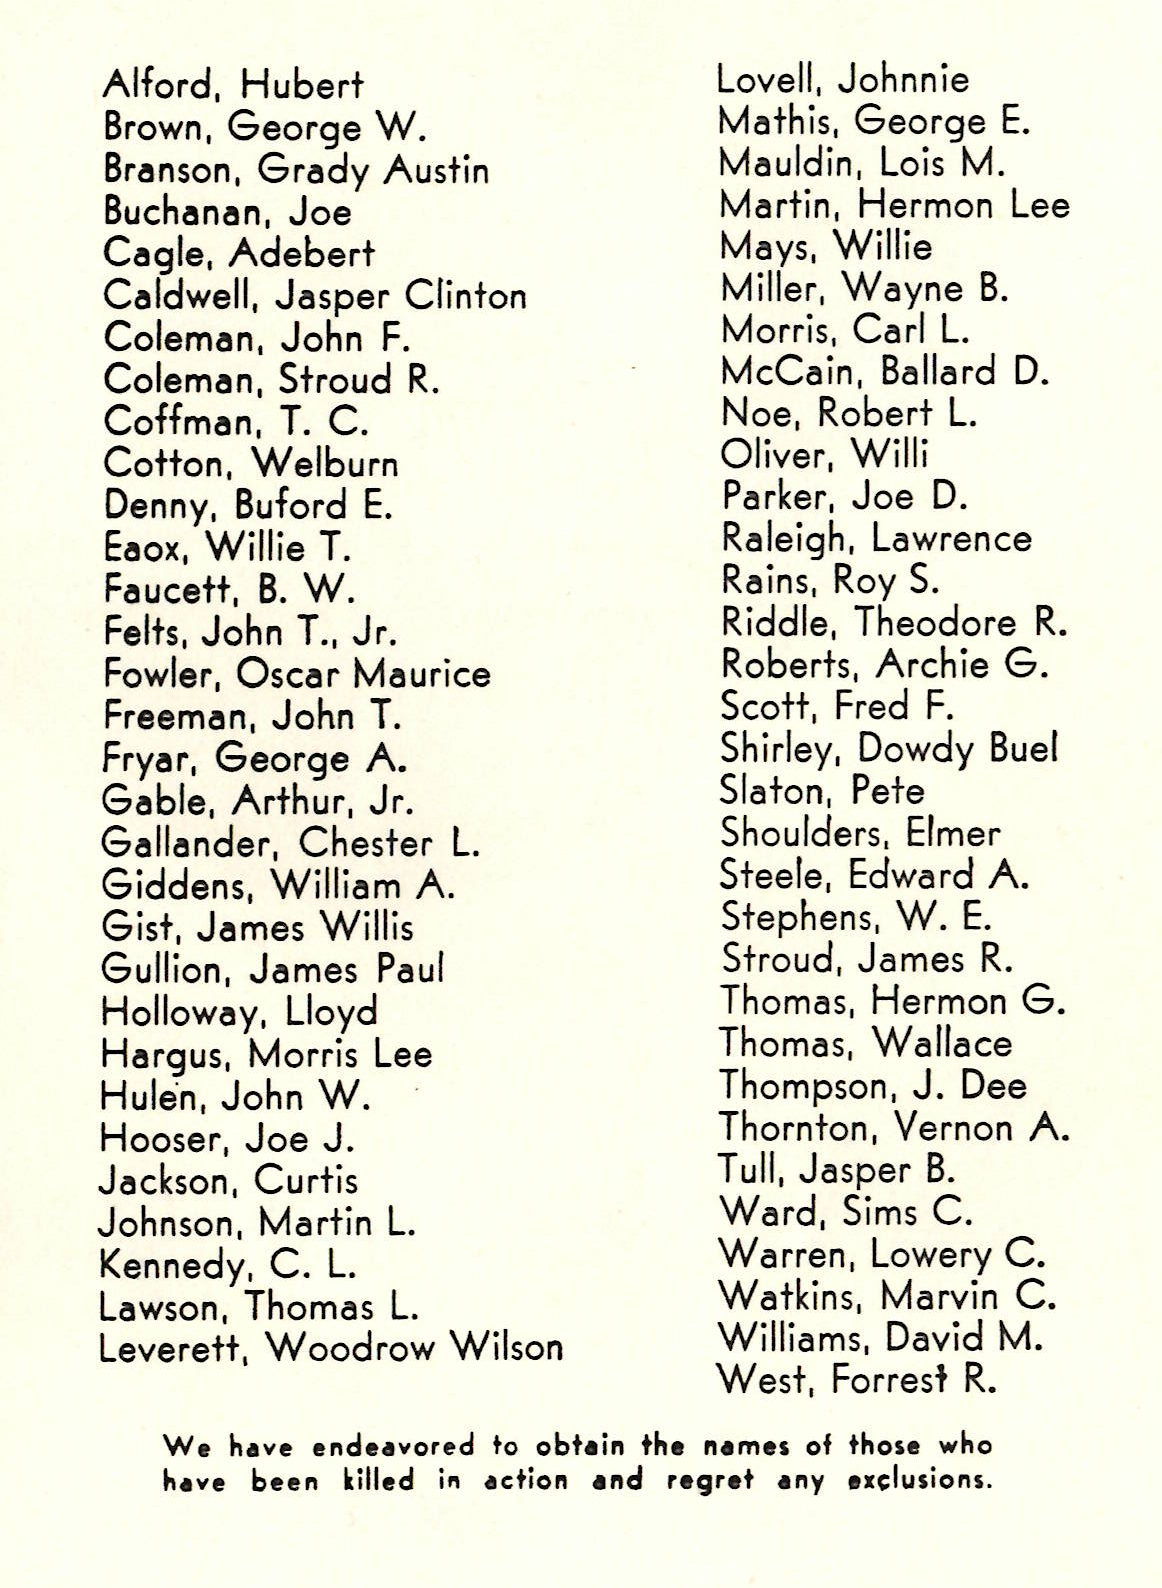 Men and women in the Armed Forces from Red River County Texas WW2 WWII World War Two 2 II 11 !! Killed in Action KIA